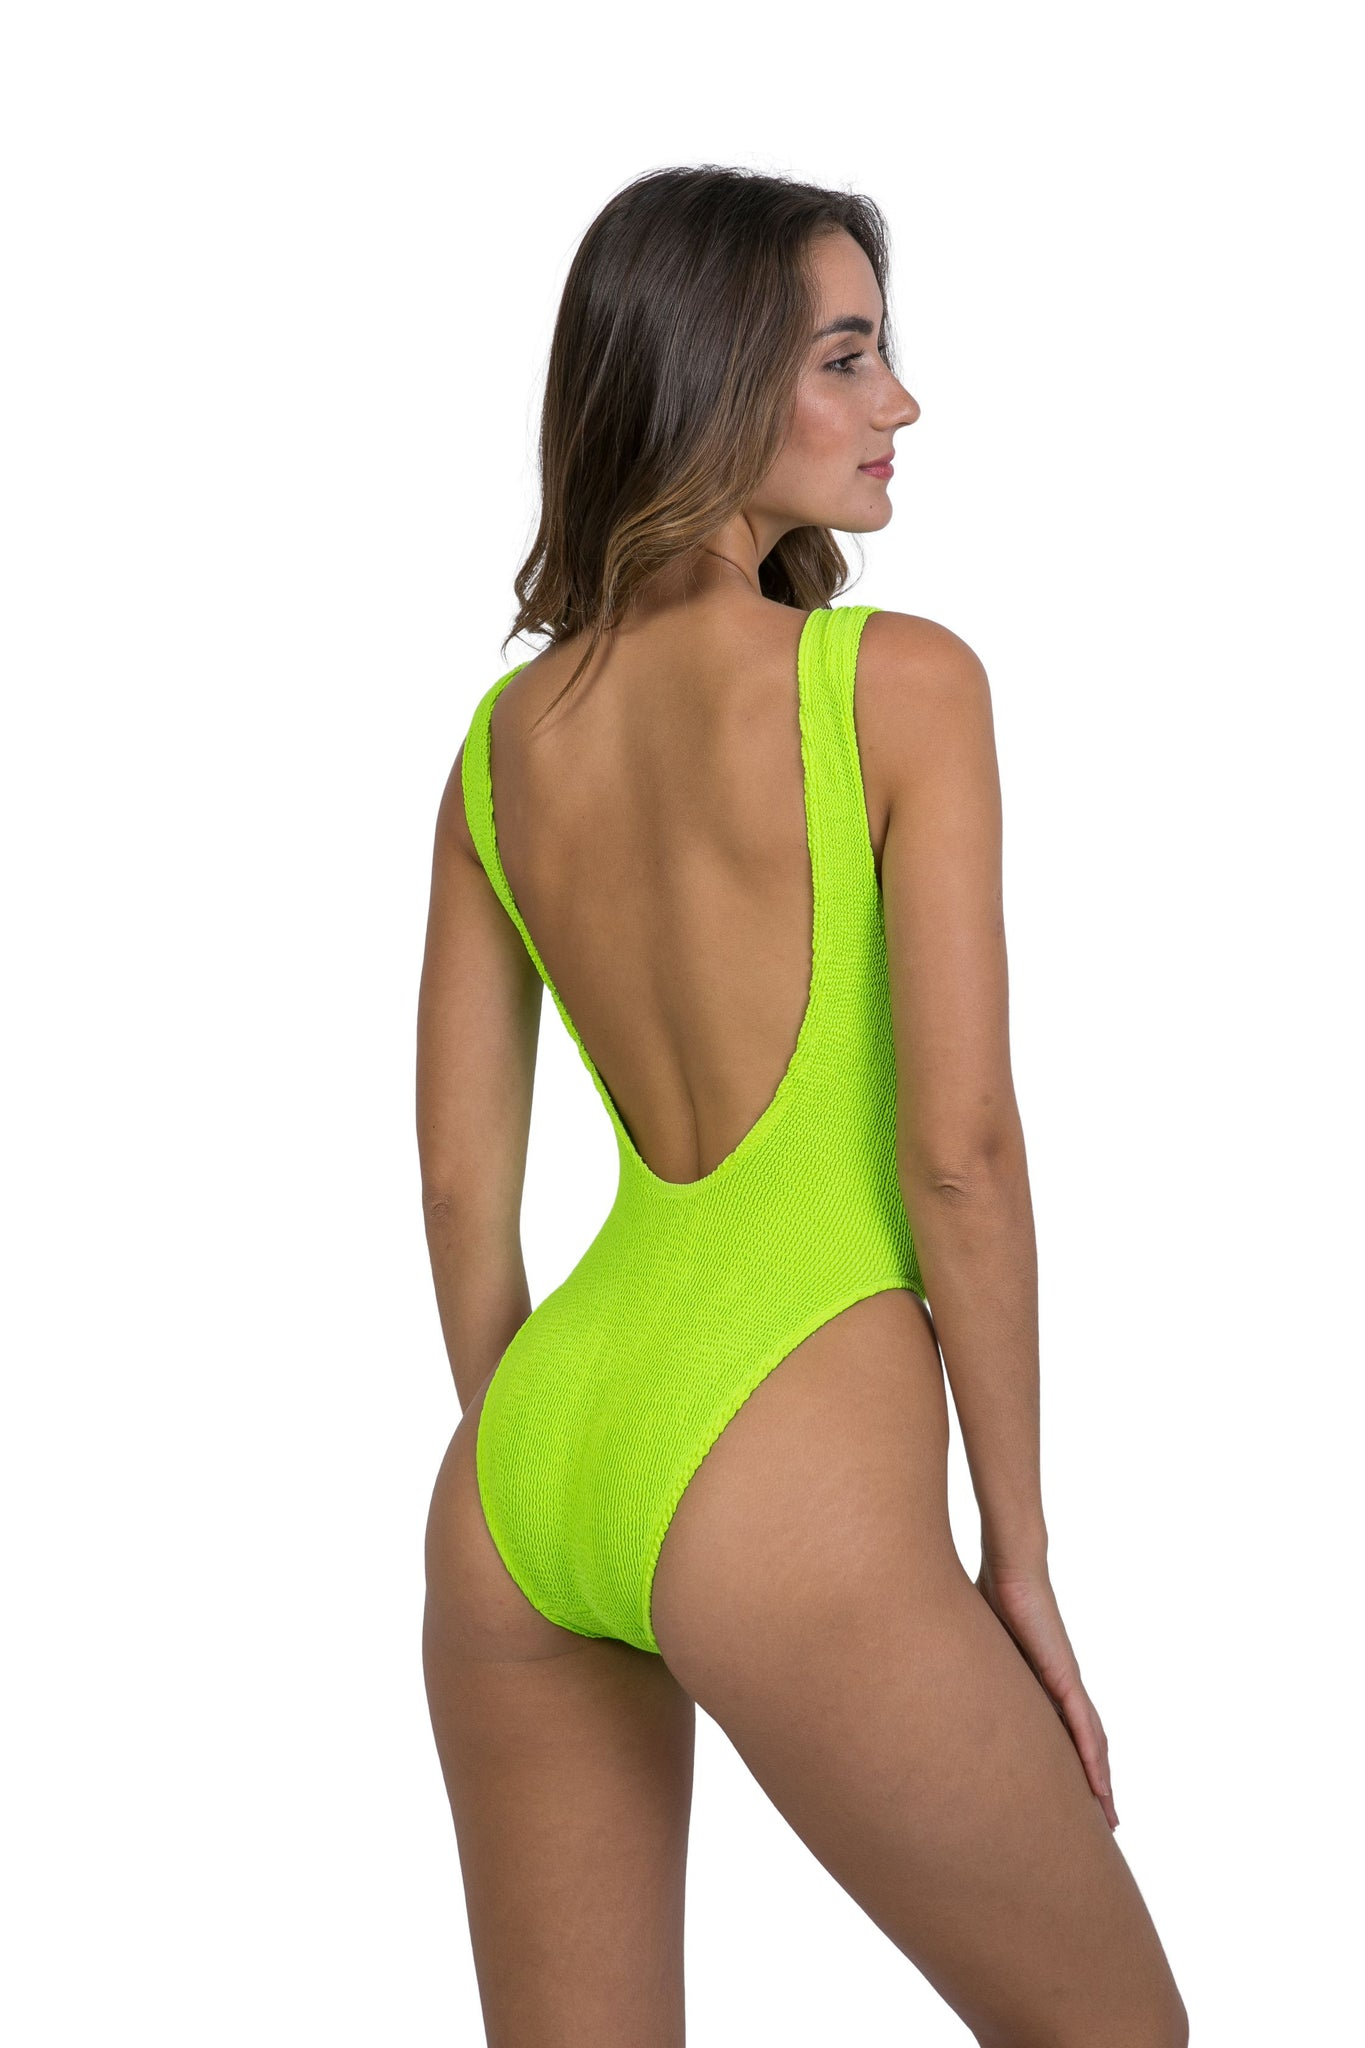 Marbella One Piece Neon Lime